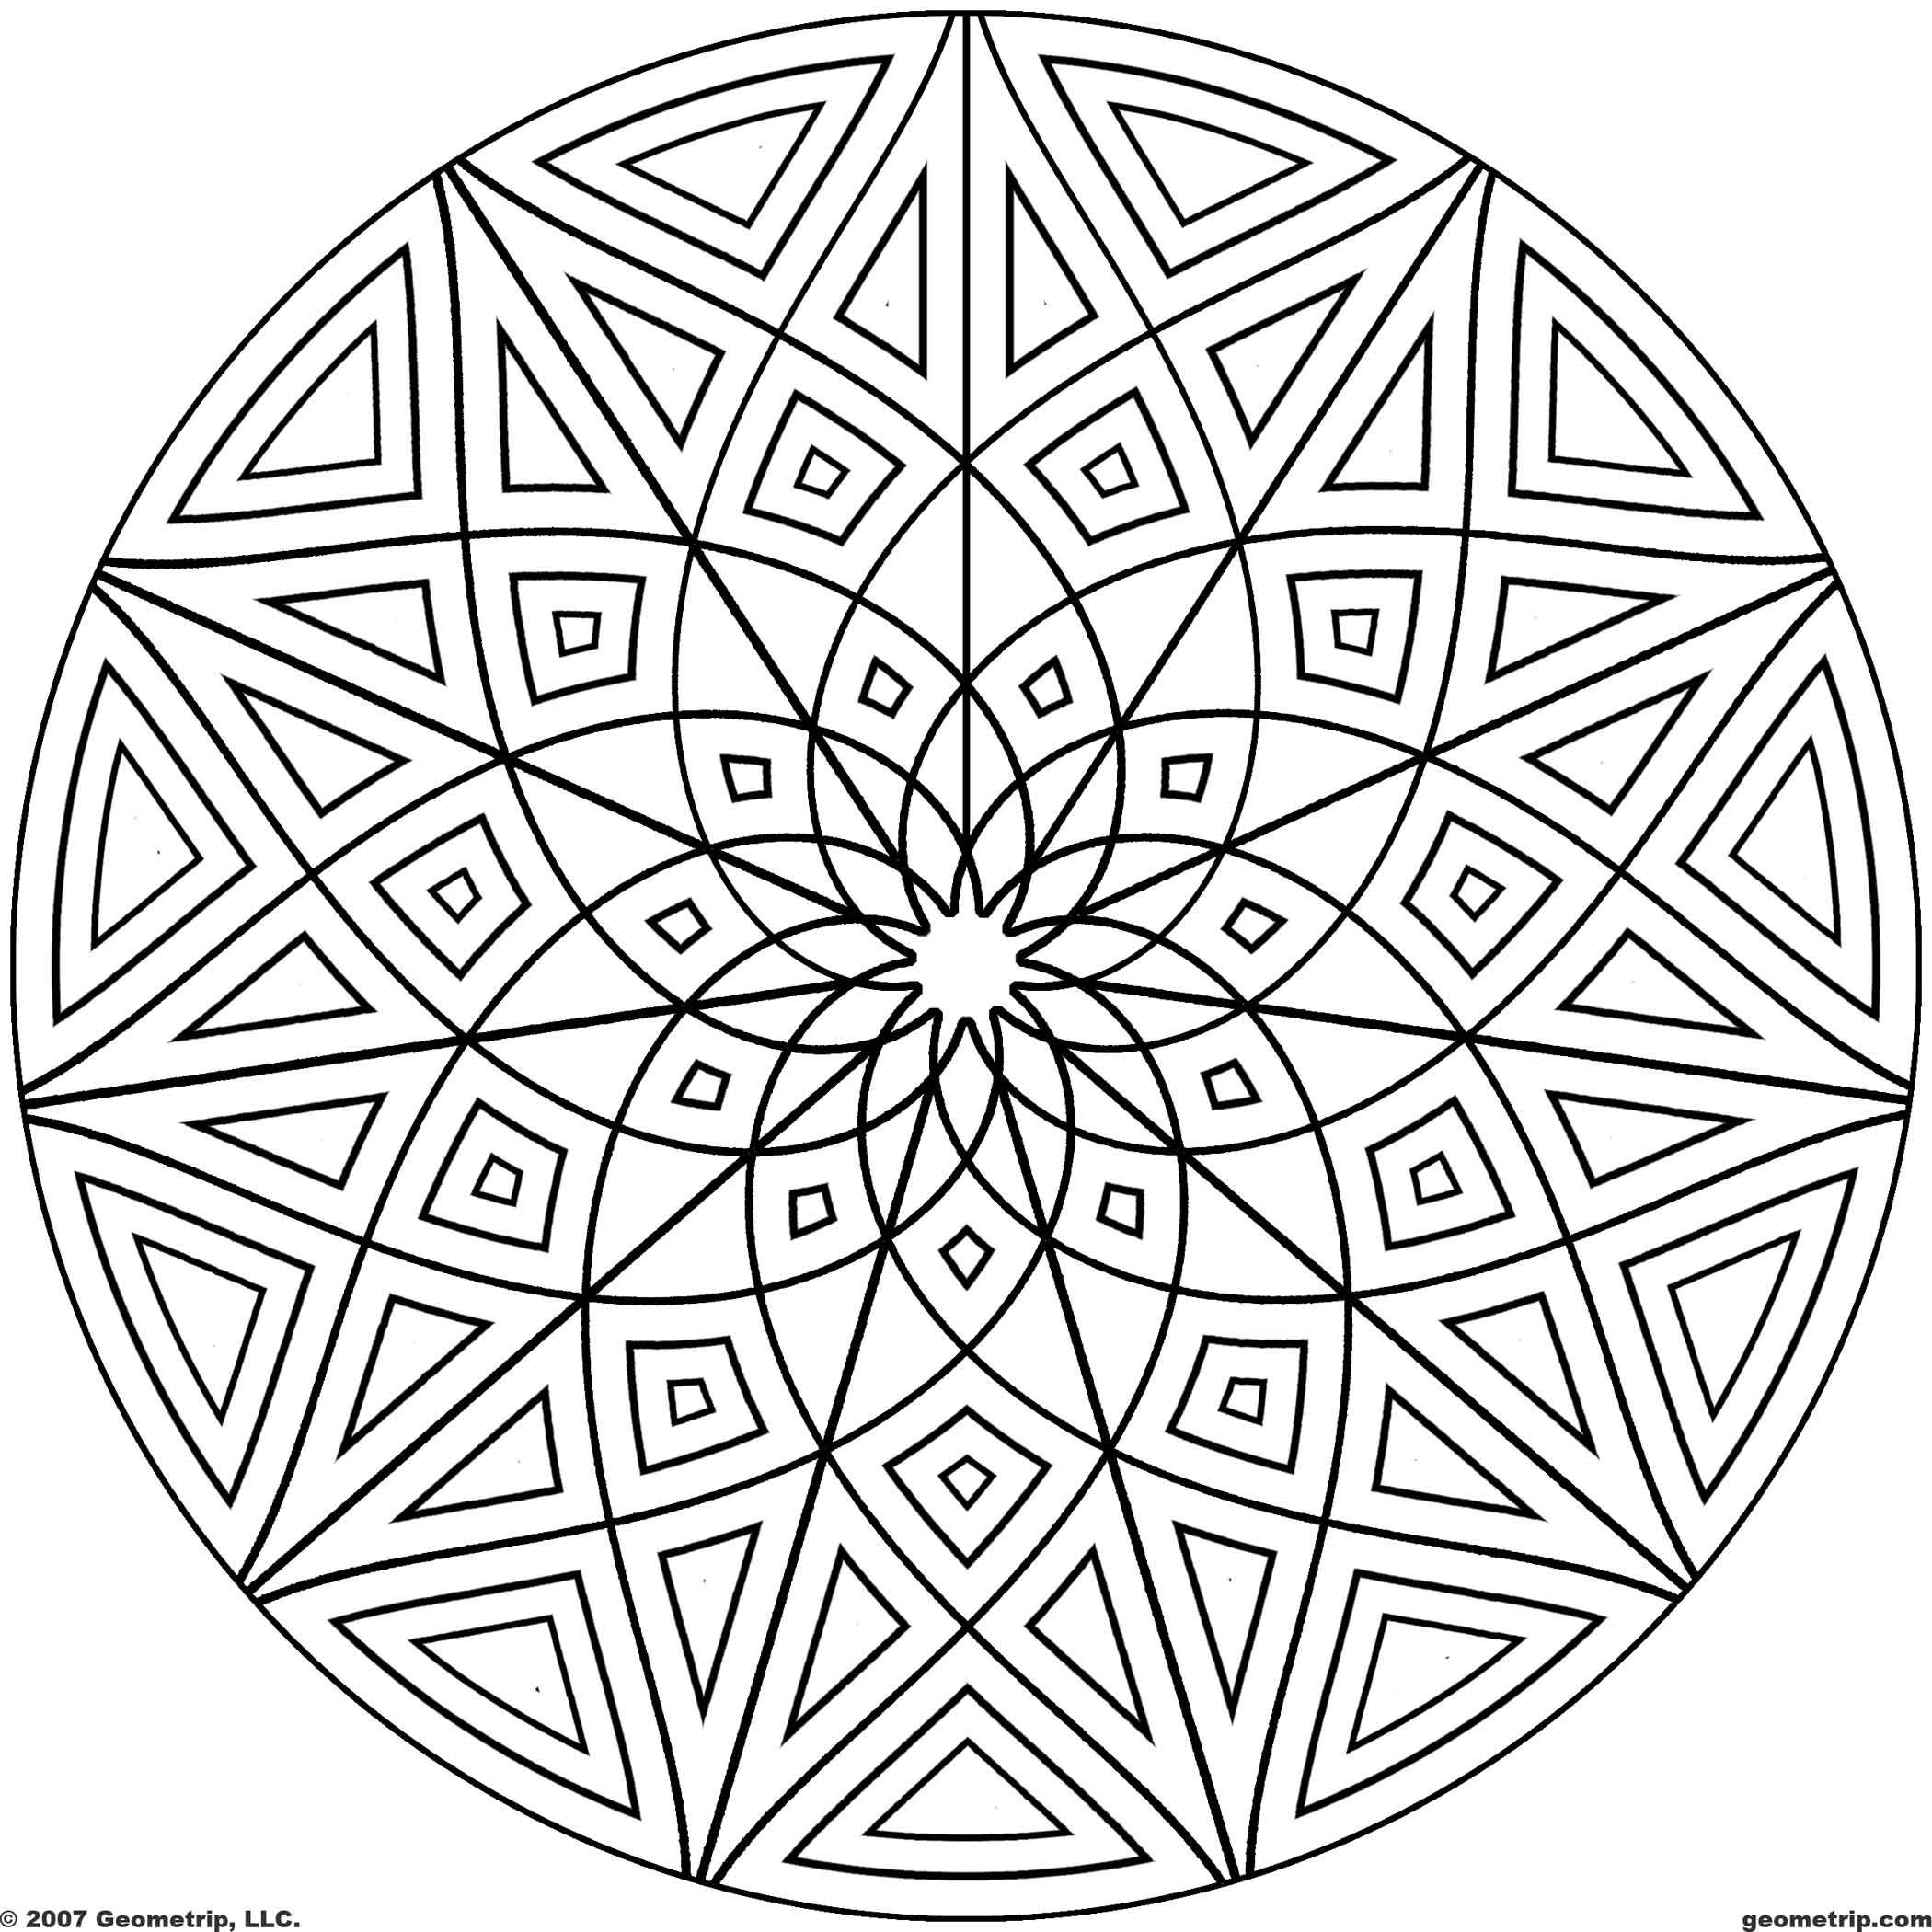 Coloring pages patterns - Explore Mandala Coloring Pages And More